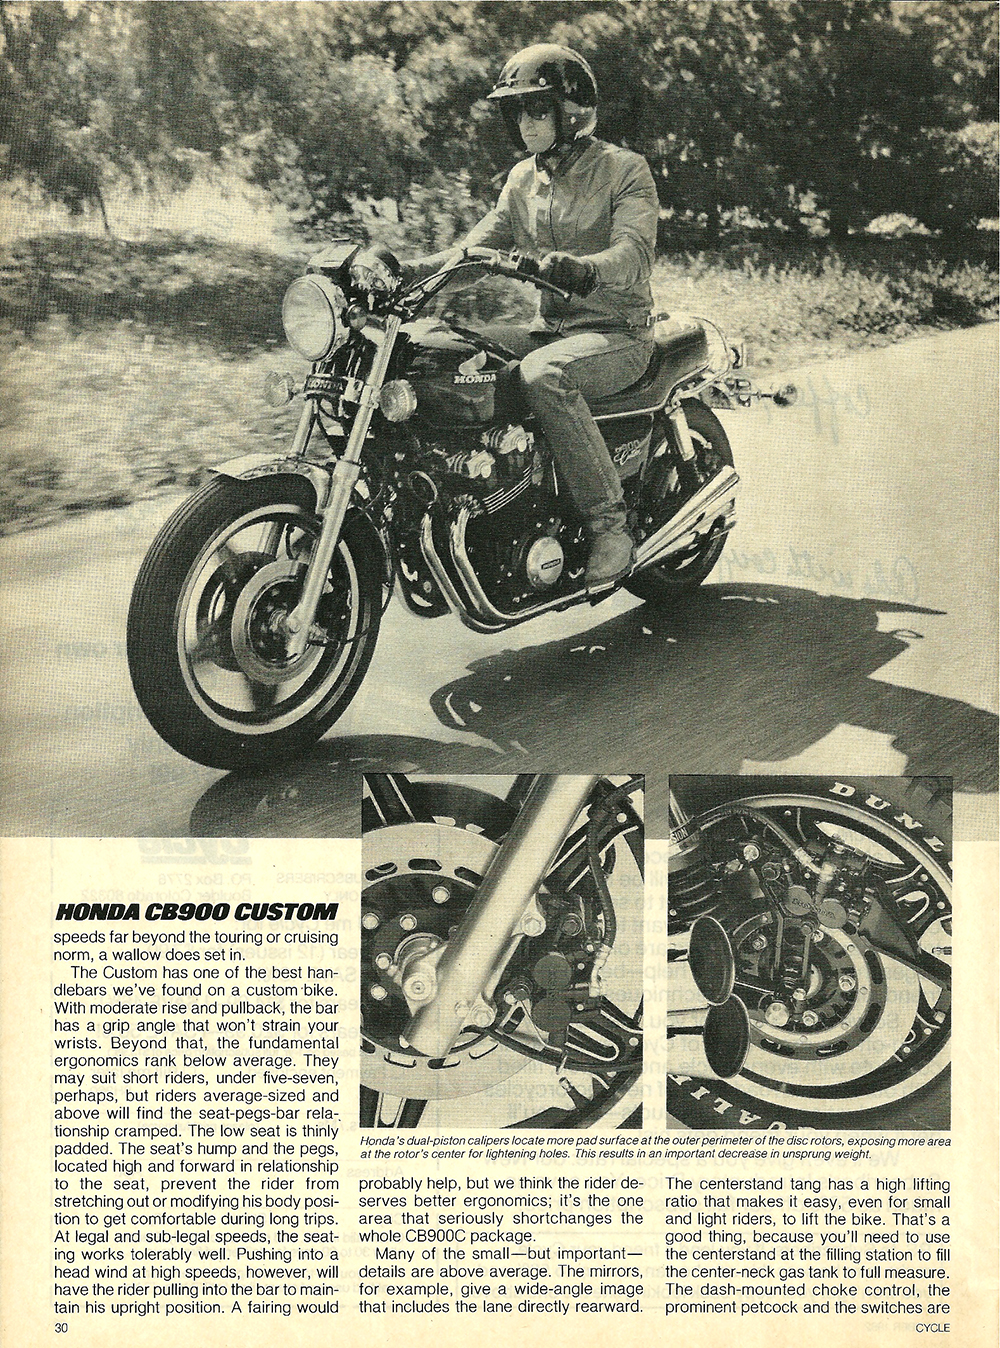 1982 Honda CB900C Custom road test 6.jpg